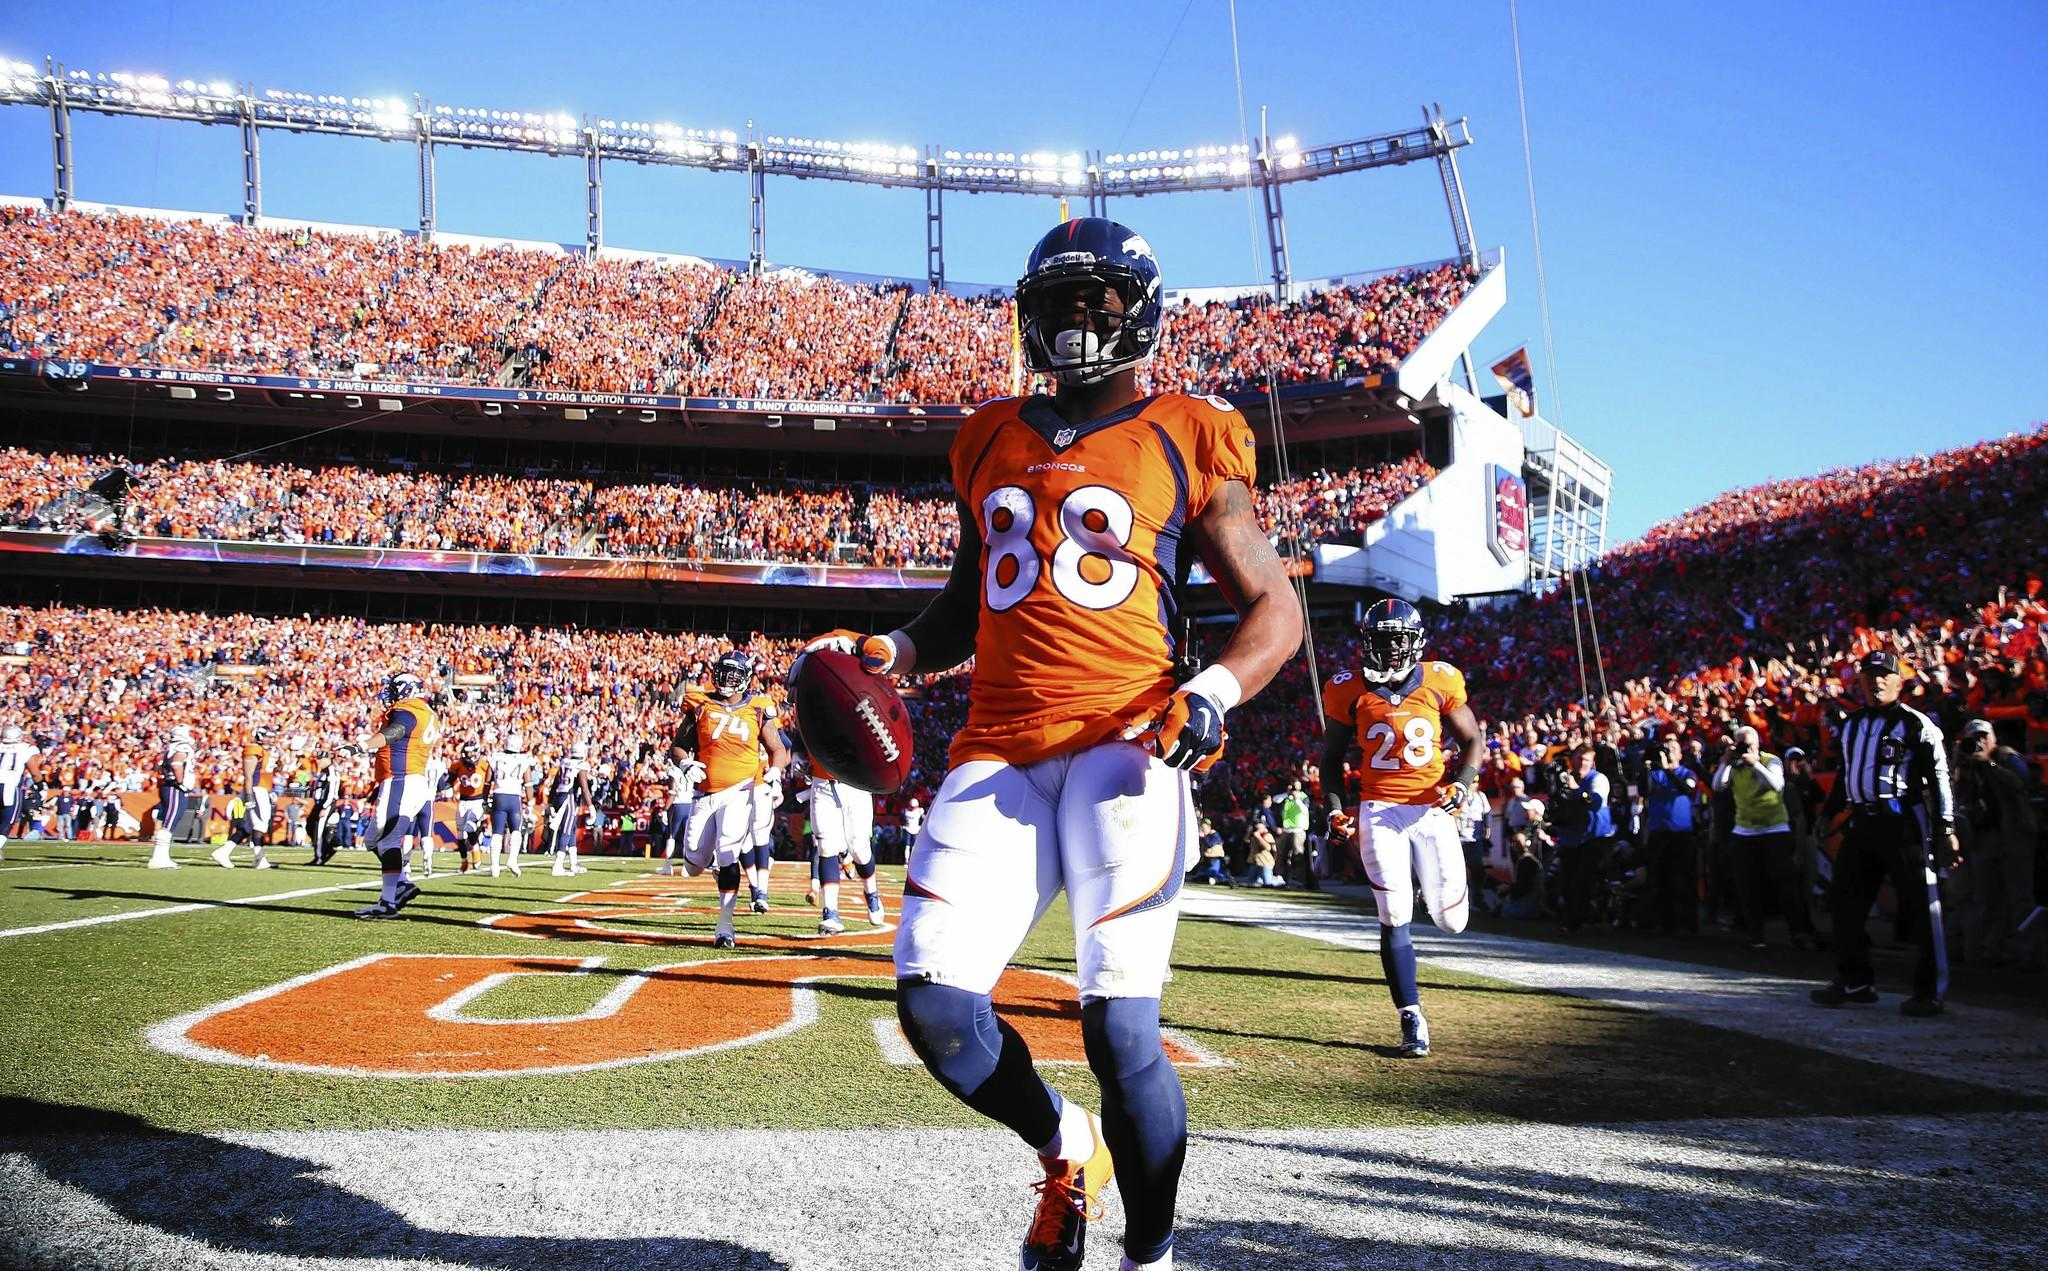 When Demaryius Thomas was 11 years old, police entered his mother's house in Montrose, Ga., and arrested both her and his grandmother on charges of selling drugs.